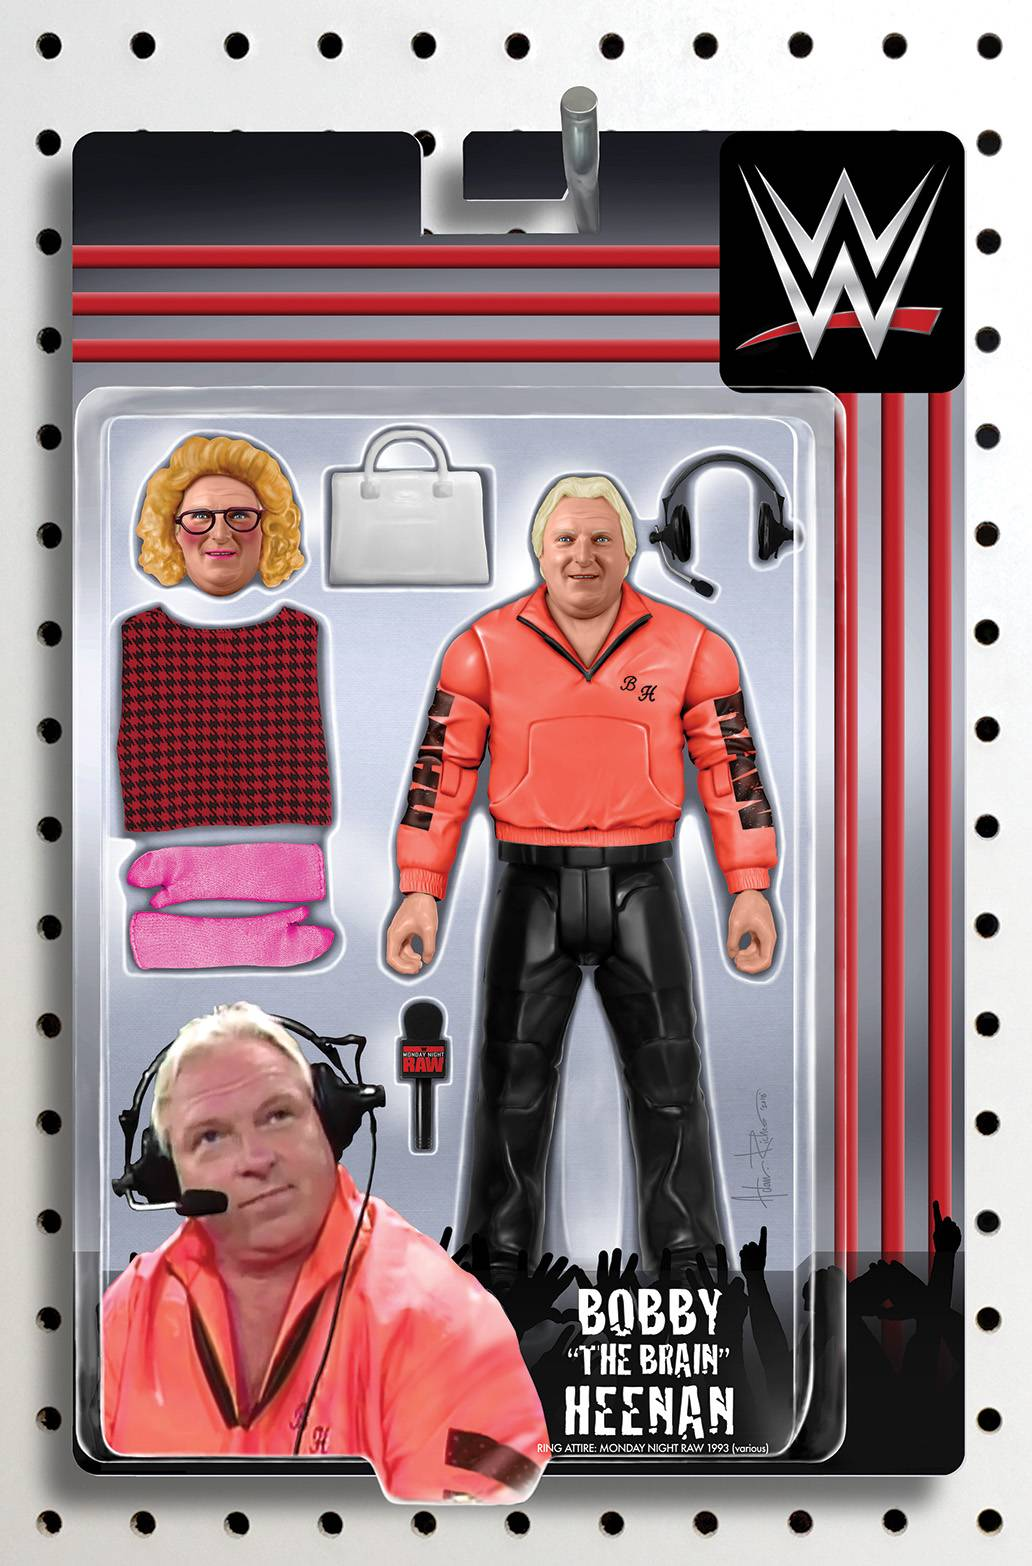 WWE 24 RICHES ACTION FIGURE VAR.jpg